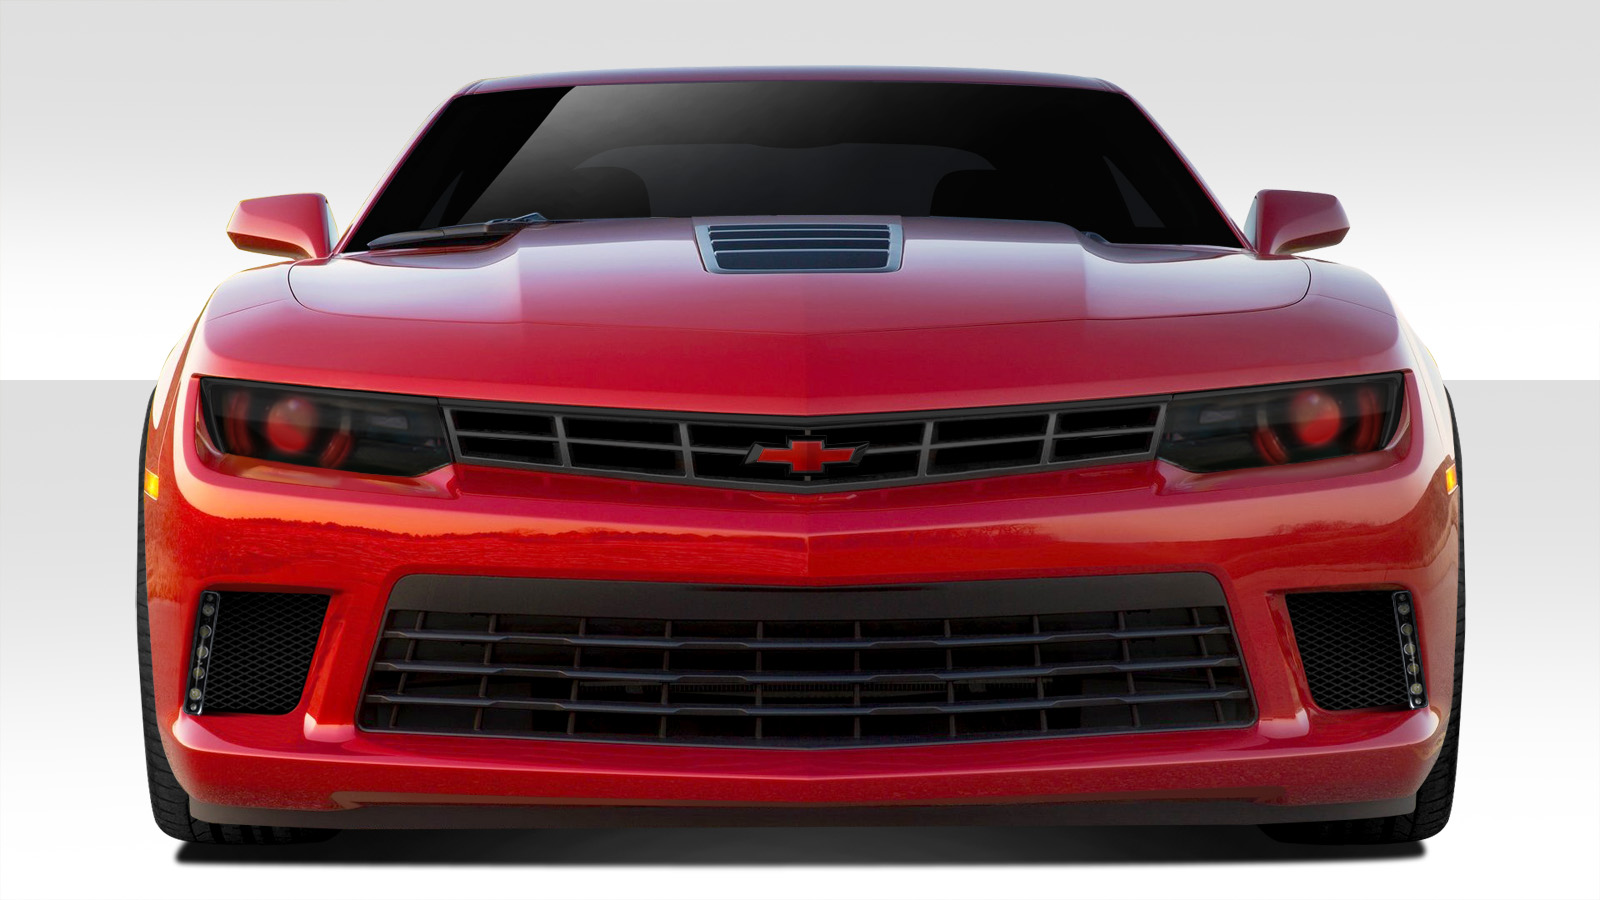 2014 2015 Chevrolet Camaro Duraflex GT Concept Front Bumper Cover 1 Piece on ford edge grill